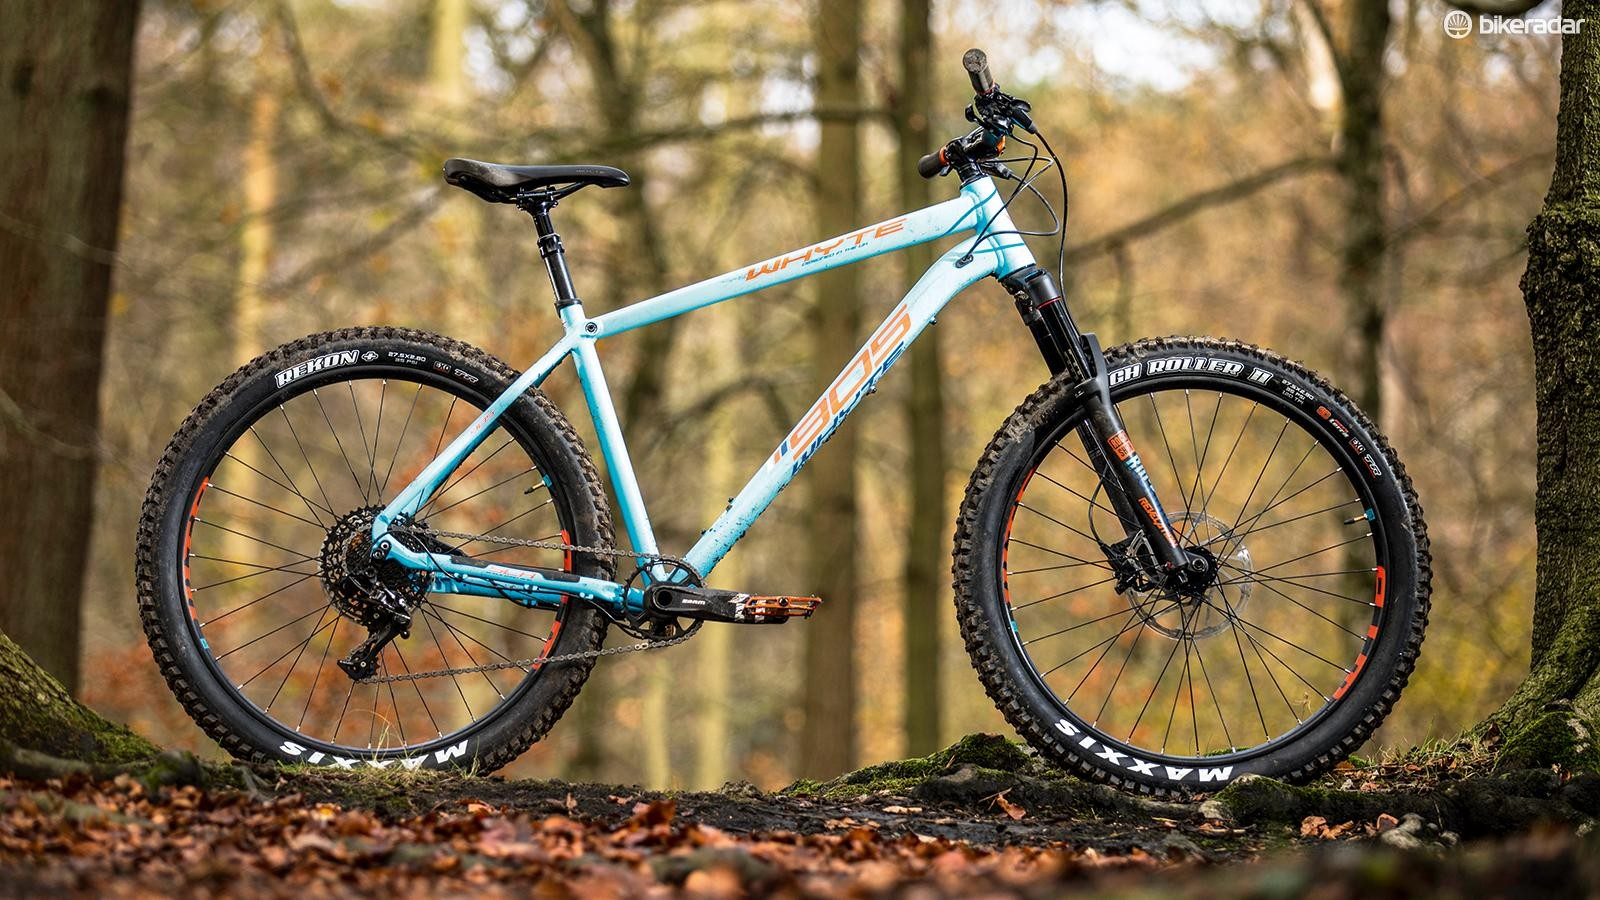 Whyte's 905 is one of our all-time favourite trail hardtails